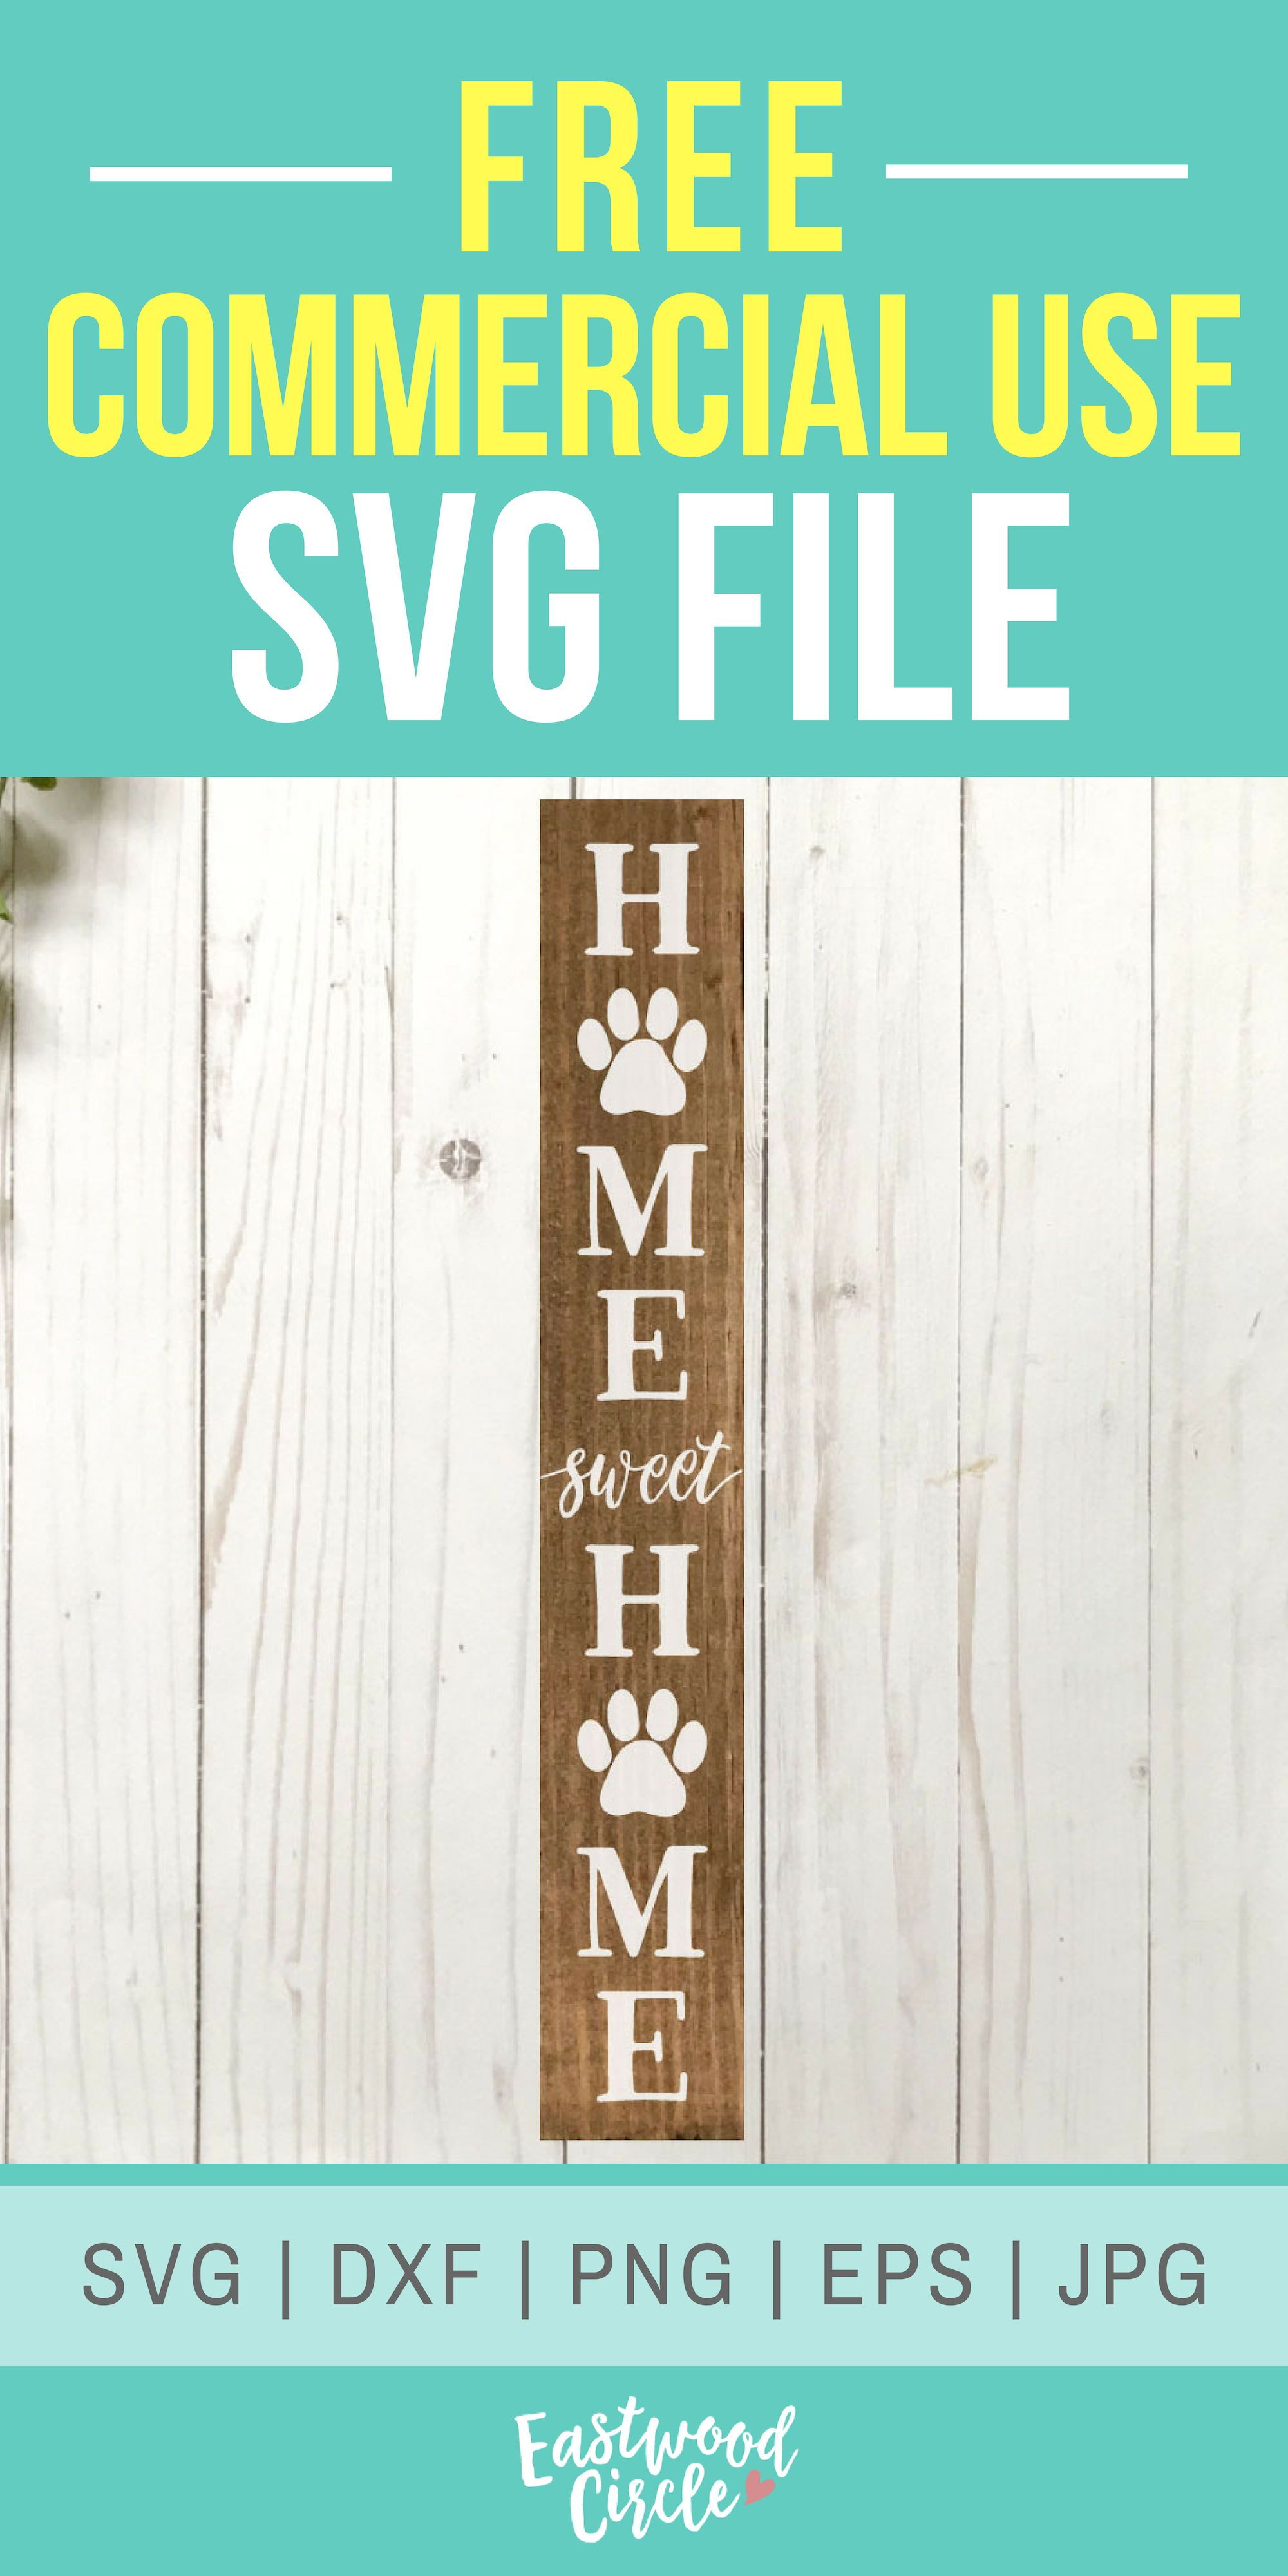 Home Sweet Home Paw Print svg, Vertical, Dog svg, Dog Sign svg, Dog svg Files, Dog Lover svg, Dog svg Files for Cricut, dxf, png, Commercial